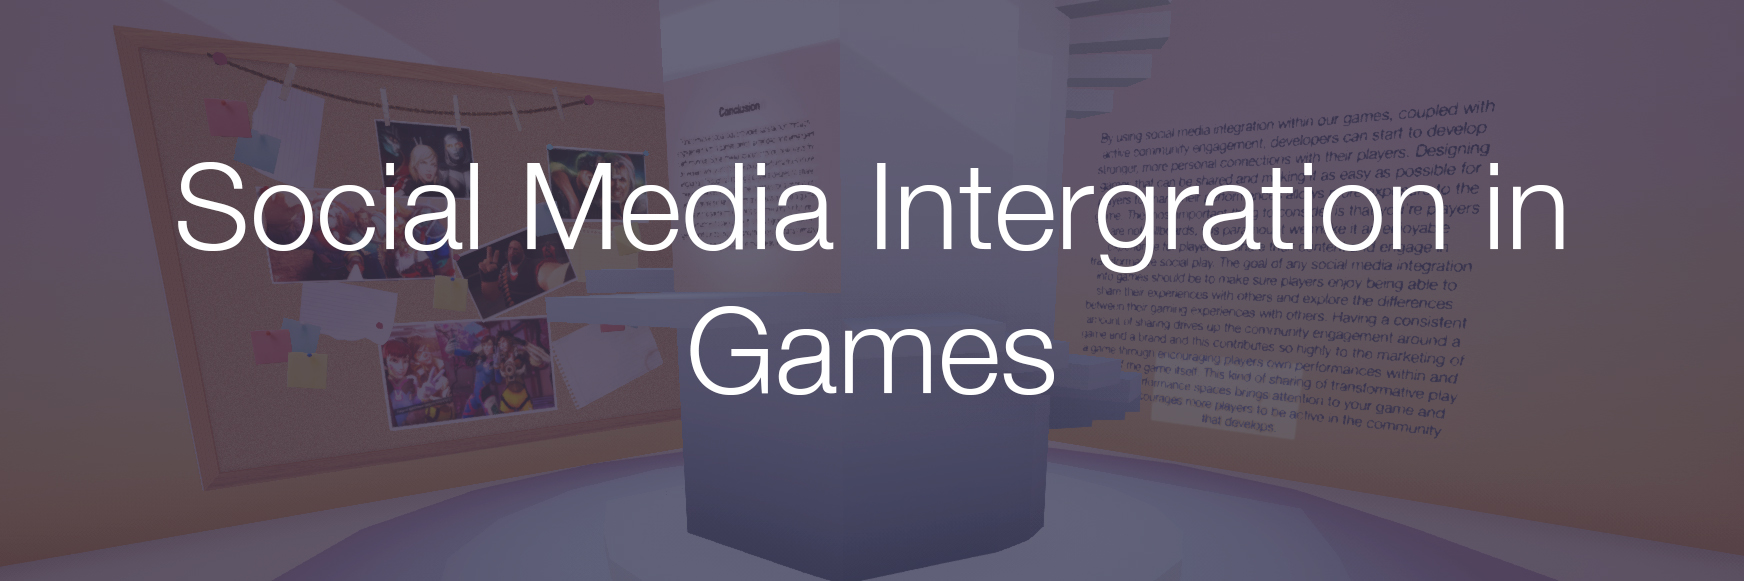 -Tech Demo- Social Media Integration in Games